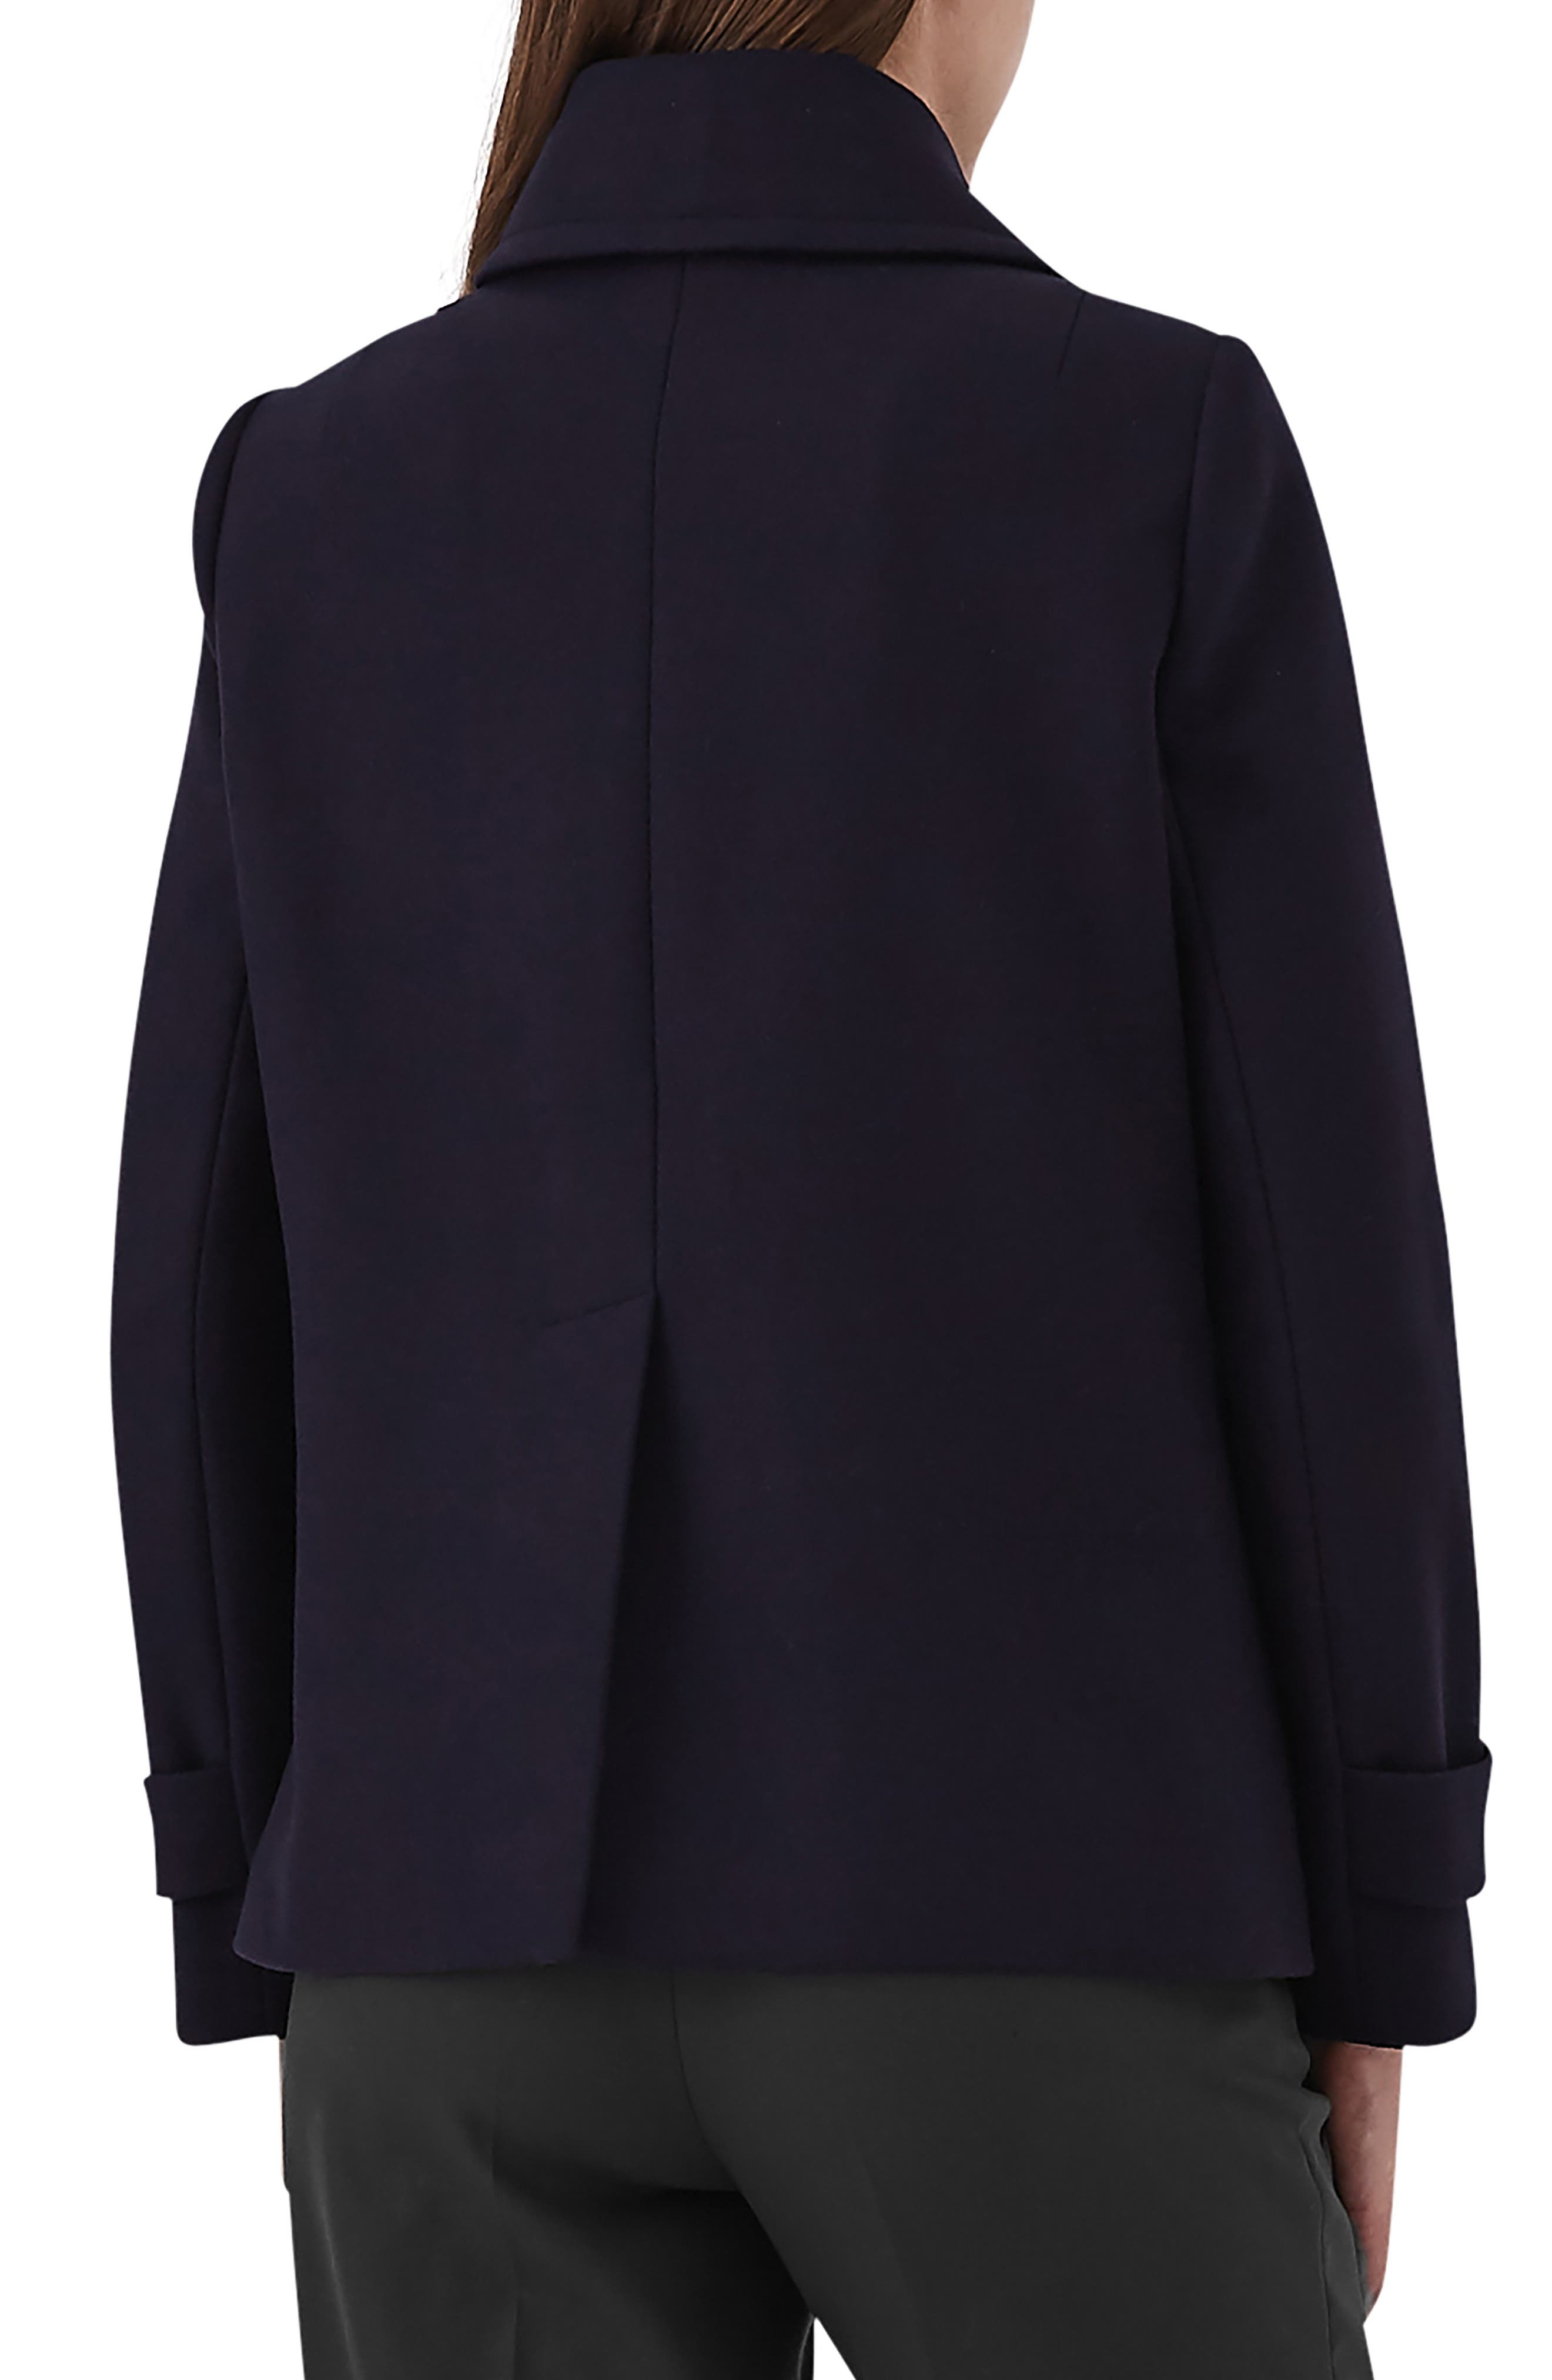 Becall Double Breasted Wool Blend Peacoat,                             Alternate thumbnail 2, color,                             NAVY